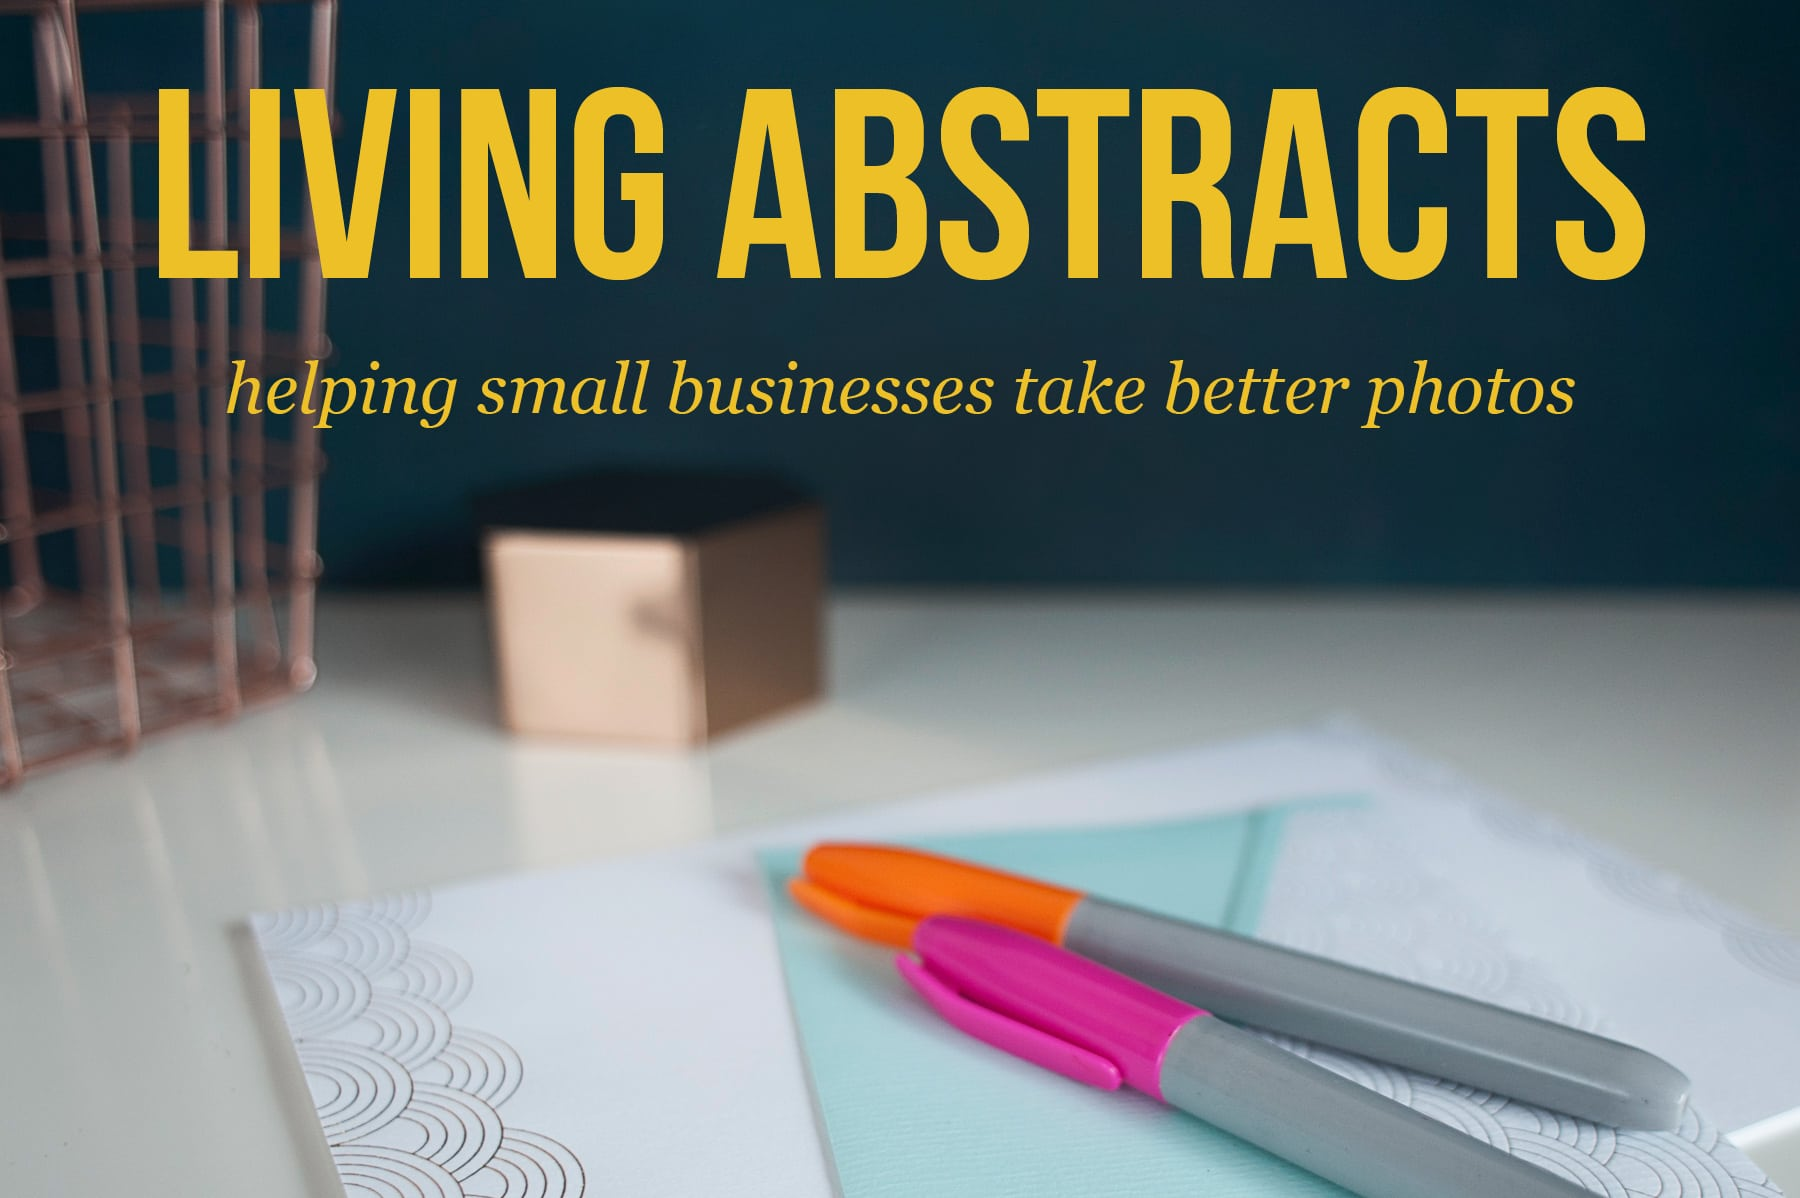 Living Abstracts - helping businesses take better photos